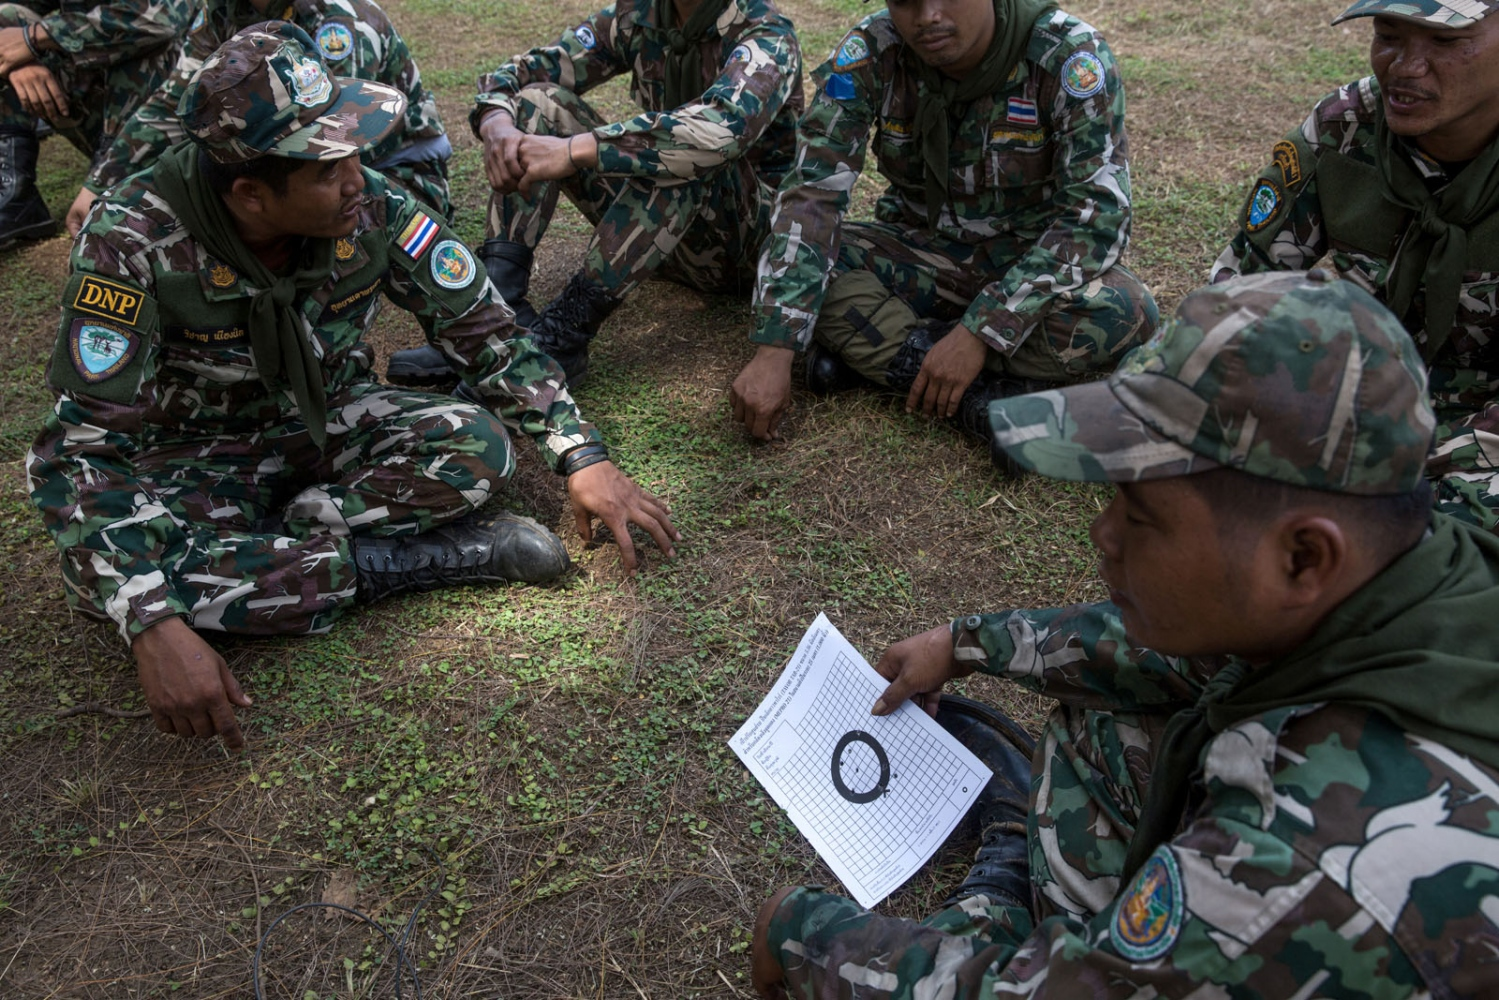 Thai forest rangers share each others target sheet after a weapons training session at a shooting range in a near by army base. Ta Praya National Park, Sa Kaew Province - September 2018